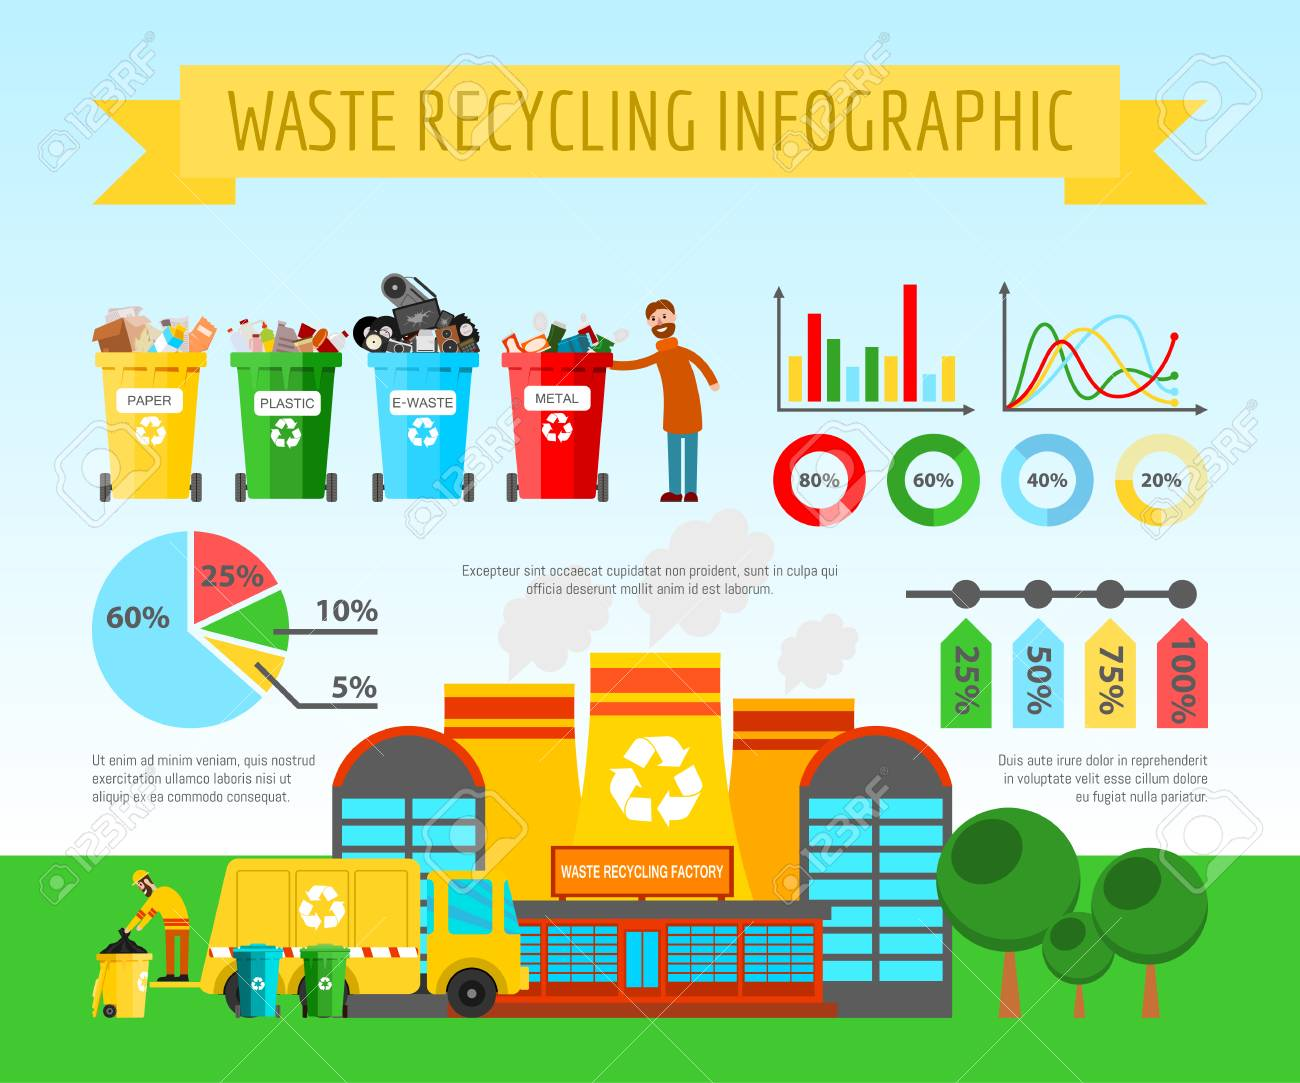 Waste recycling infographic concept banner vector illustration. Worker sorting different types of garbage. Truck transporting trash to recycling plant. Production new goods from recicled materials. - 124023718